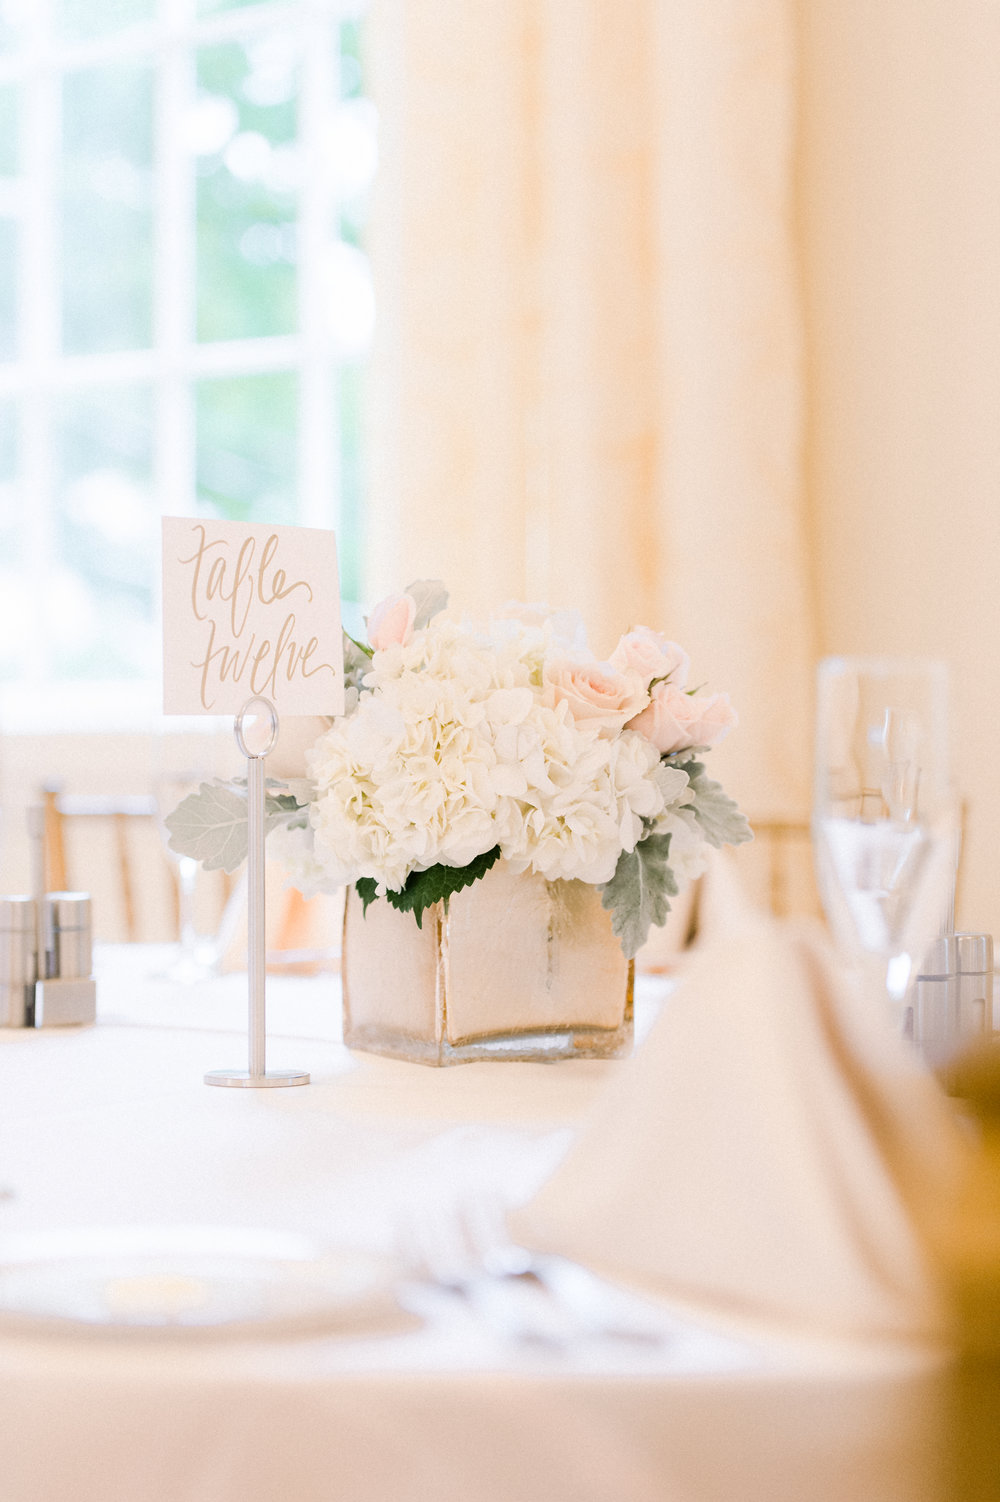 The Commons 1854 Topsfield MA wedding | Massachusetts wedding venue | Massachusetts wedding photos | North Shore MA Wedding photos | blush pink and white flower centerpieces